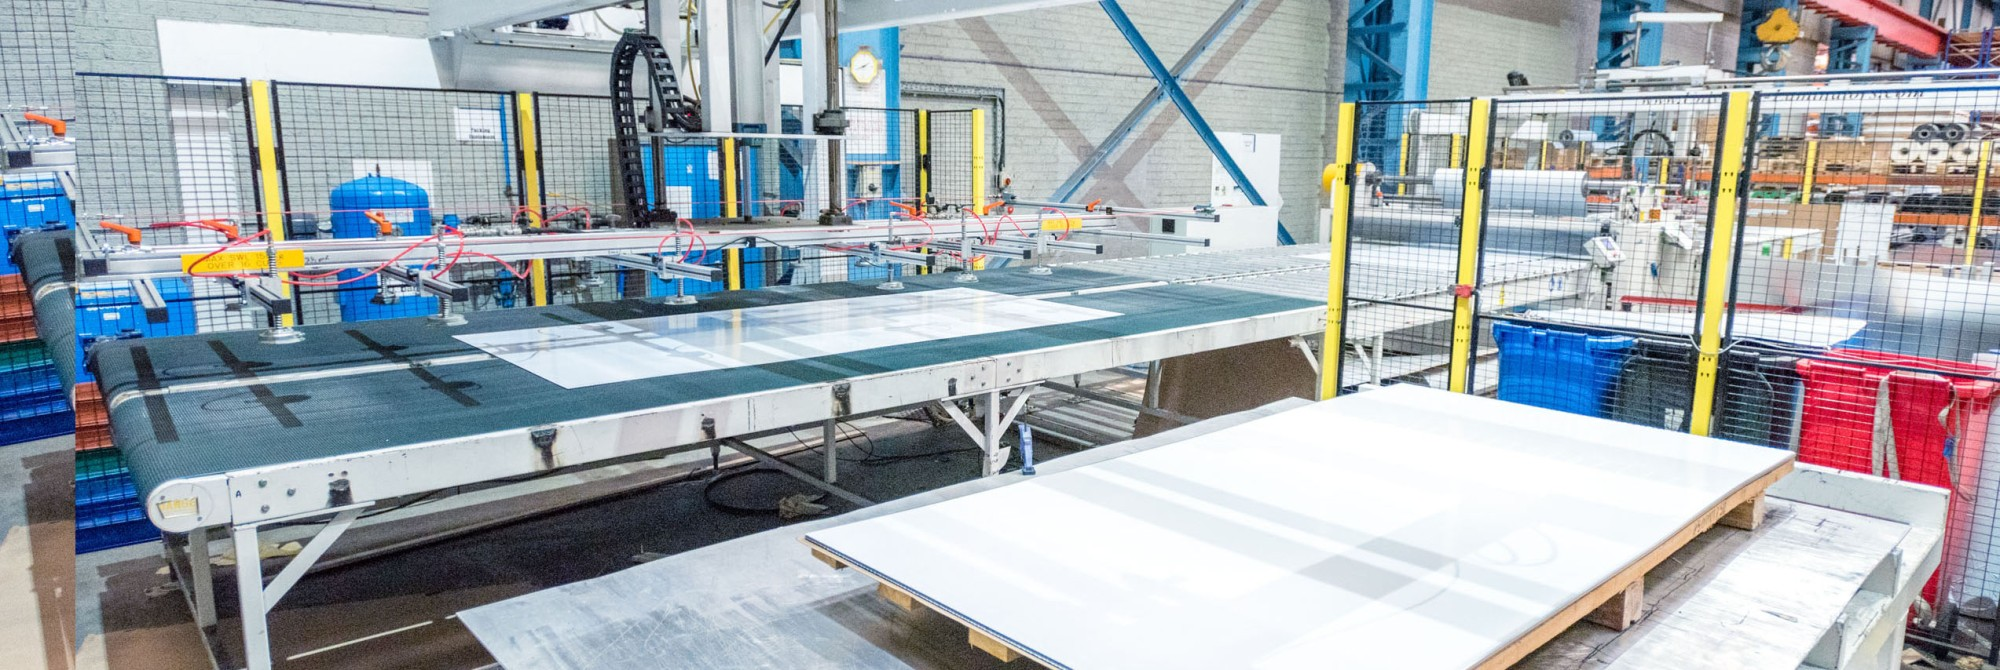 thyssenkrupp Materials Polycoating